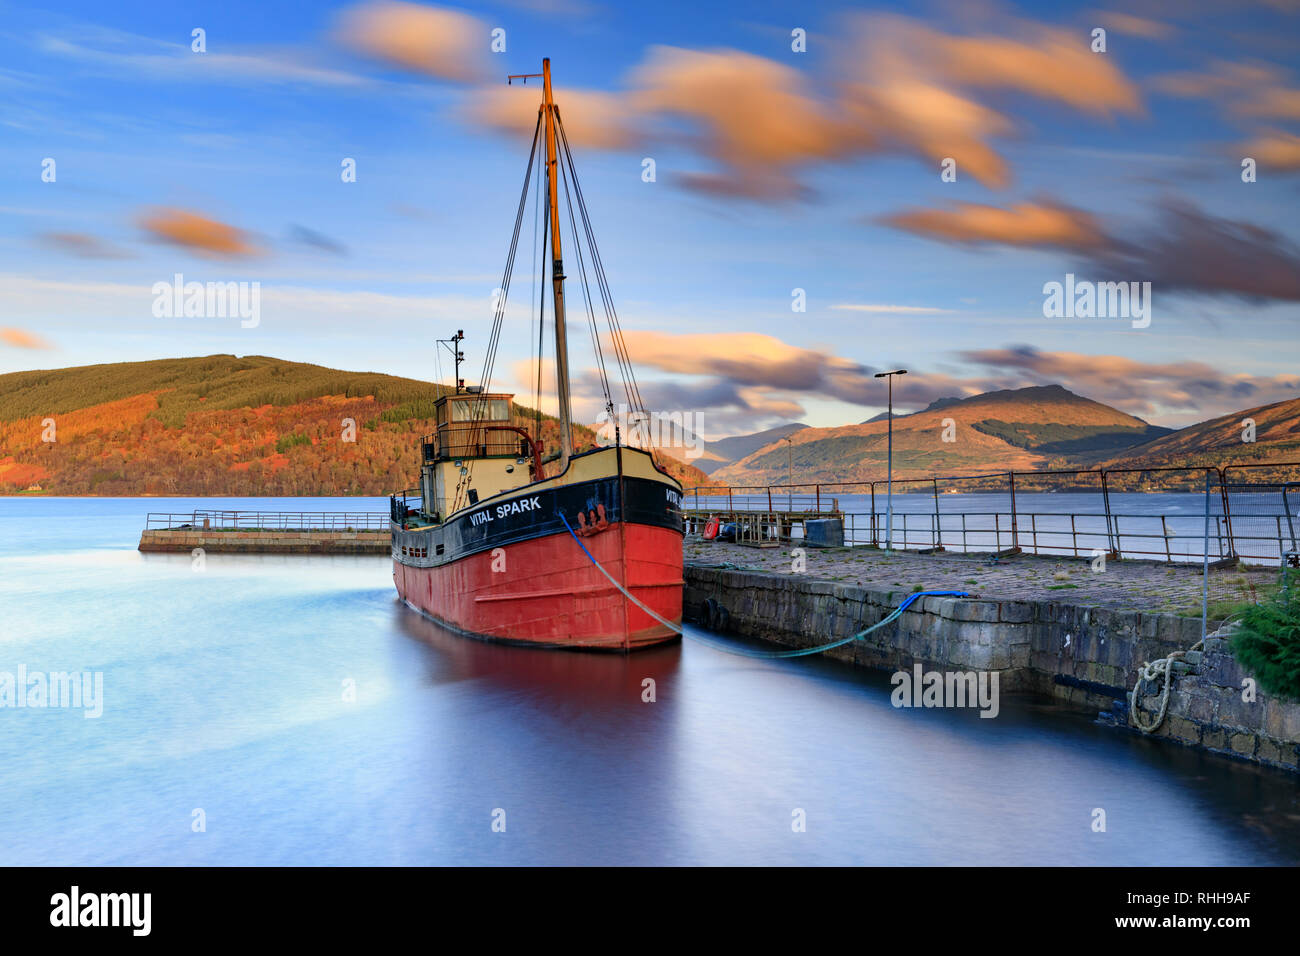 The Clyde puffer Vital Spark moored in Inveraray Harbour. - Stock Image